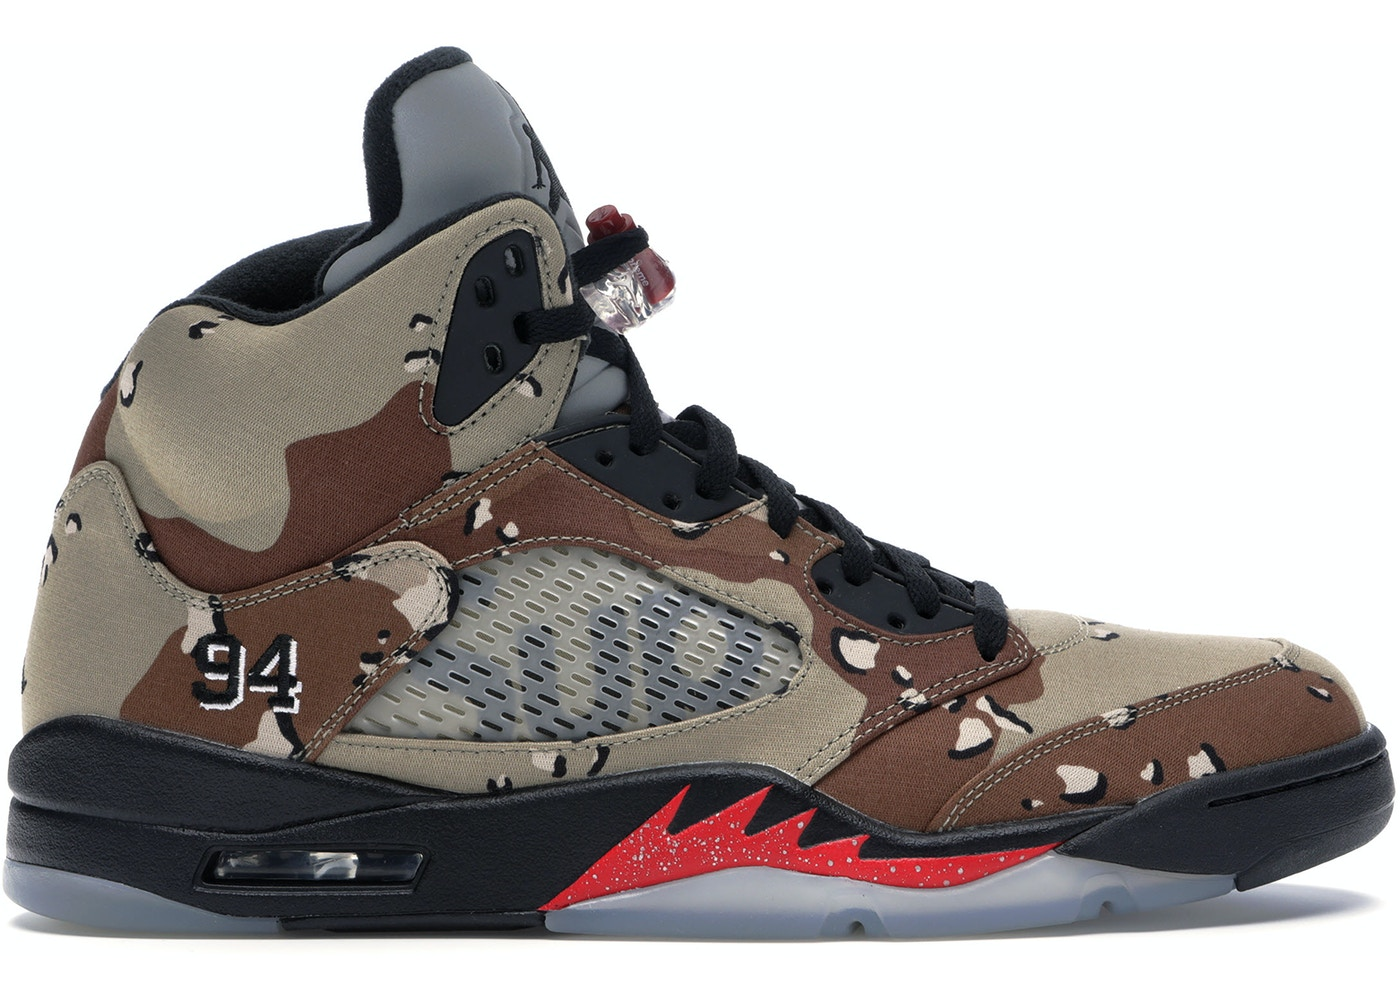 super popular 8f2b8 65484 Jordan 5 Retro Supreme Desert Camo - 824371-201